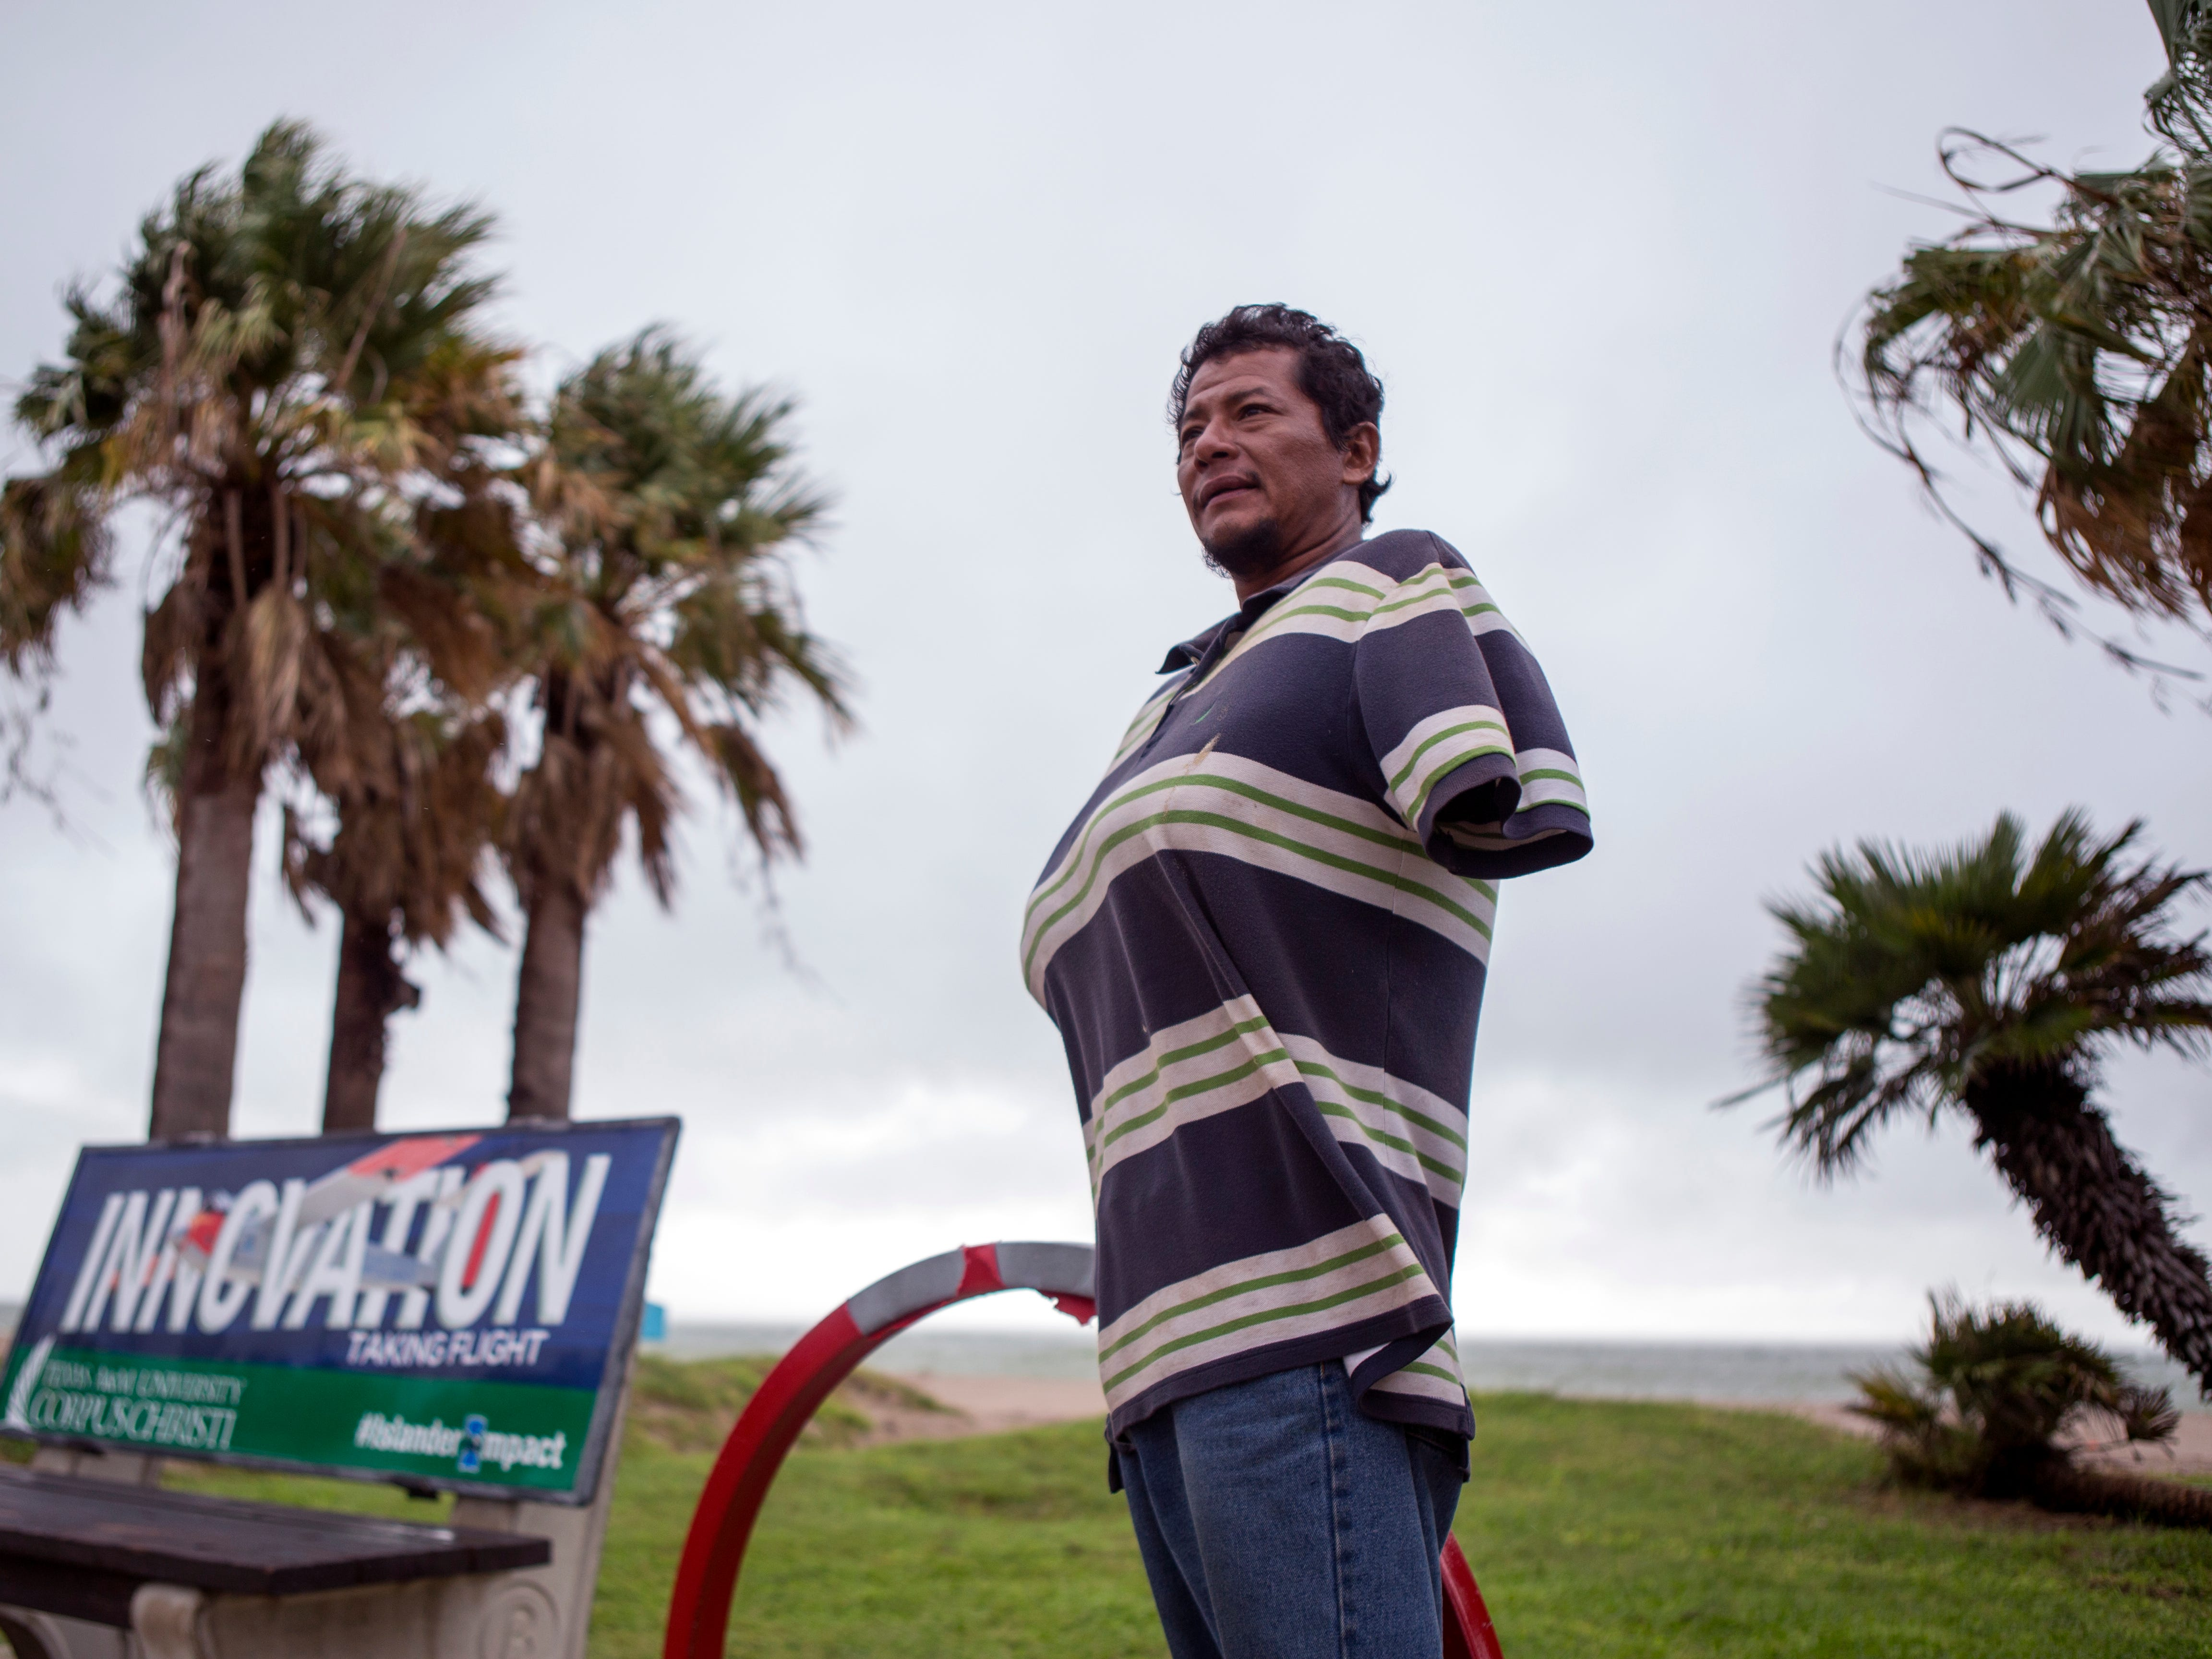 Carlo Garcia tucks his arms in his shirt to stay warm as he waits for a bus on North Beach on Monday, October 15, 2018. Cold temperatures moved through South Texas on Monday.